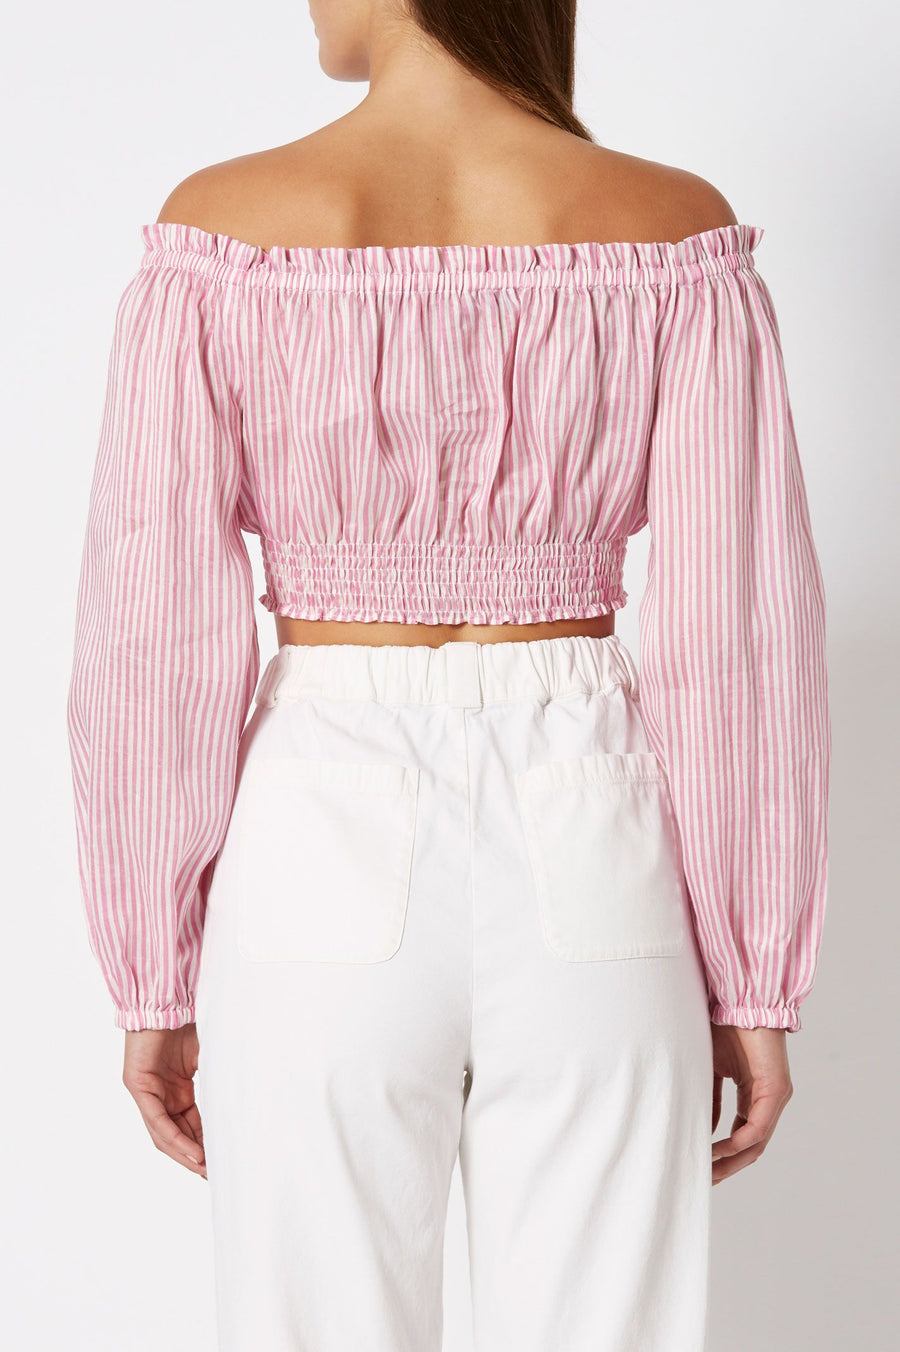 Stripe Voile Cropped Top Pink-White, regular fit, elasticated neck, sleeve and waist, cropped style, long blouson sleeves.